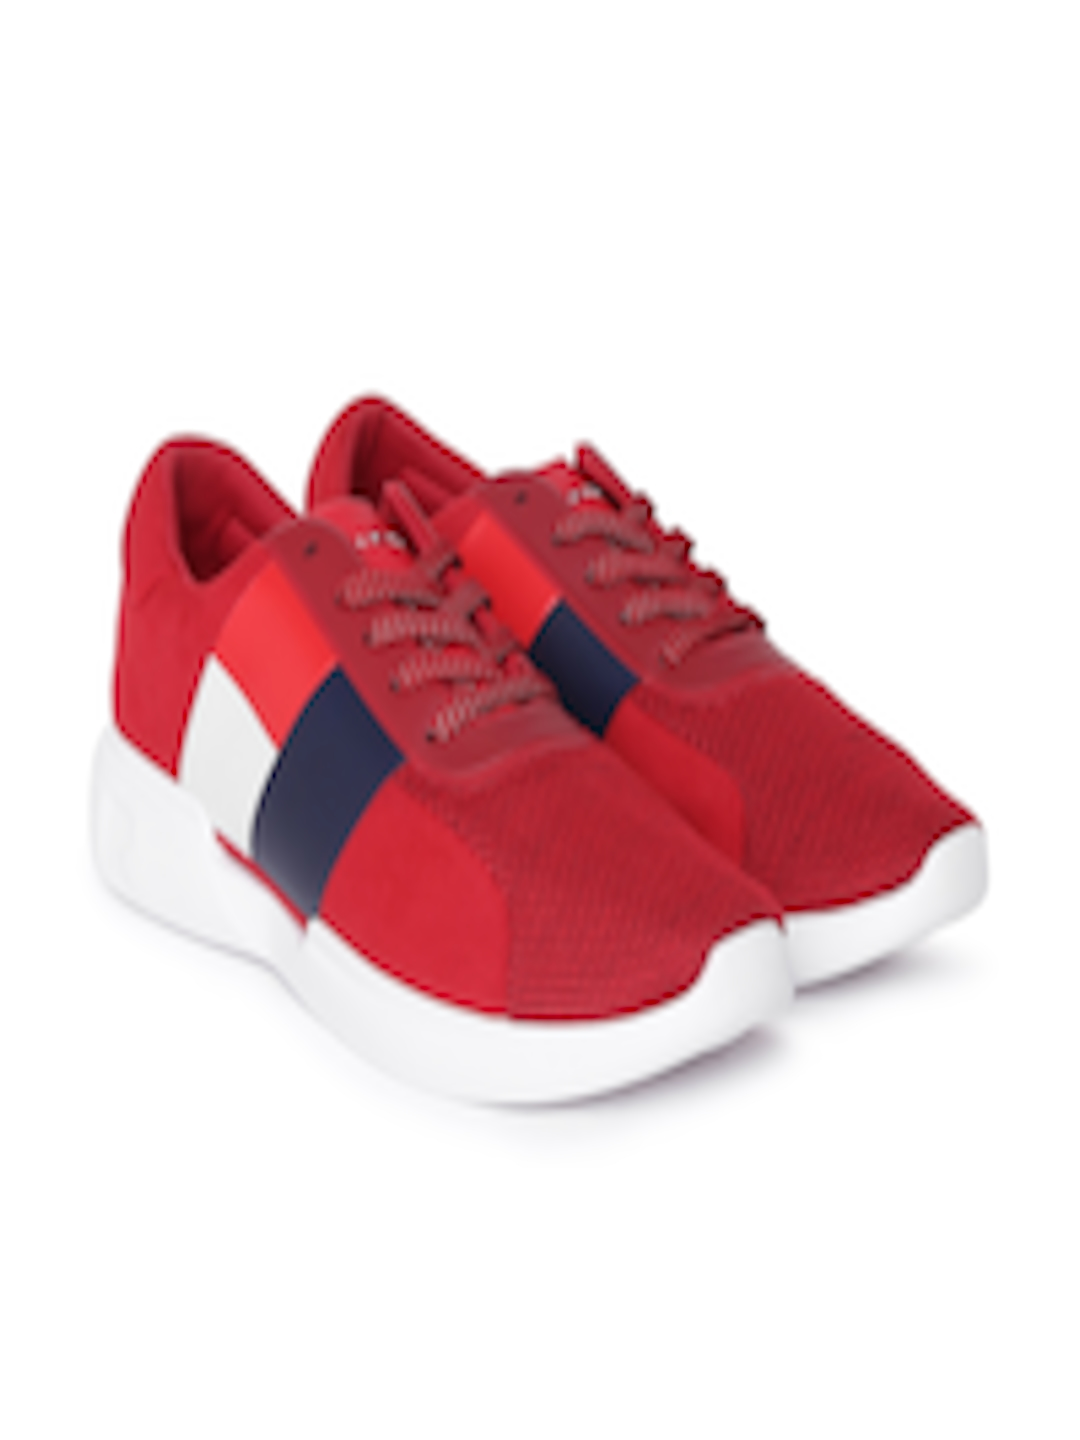 8abd4b0555f1e7 Buy Tommy Hilfiger Men Red Sneakers - Casual Shoes for Men 7419632 ...